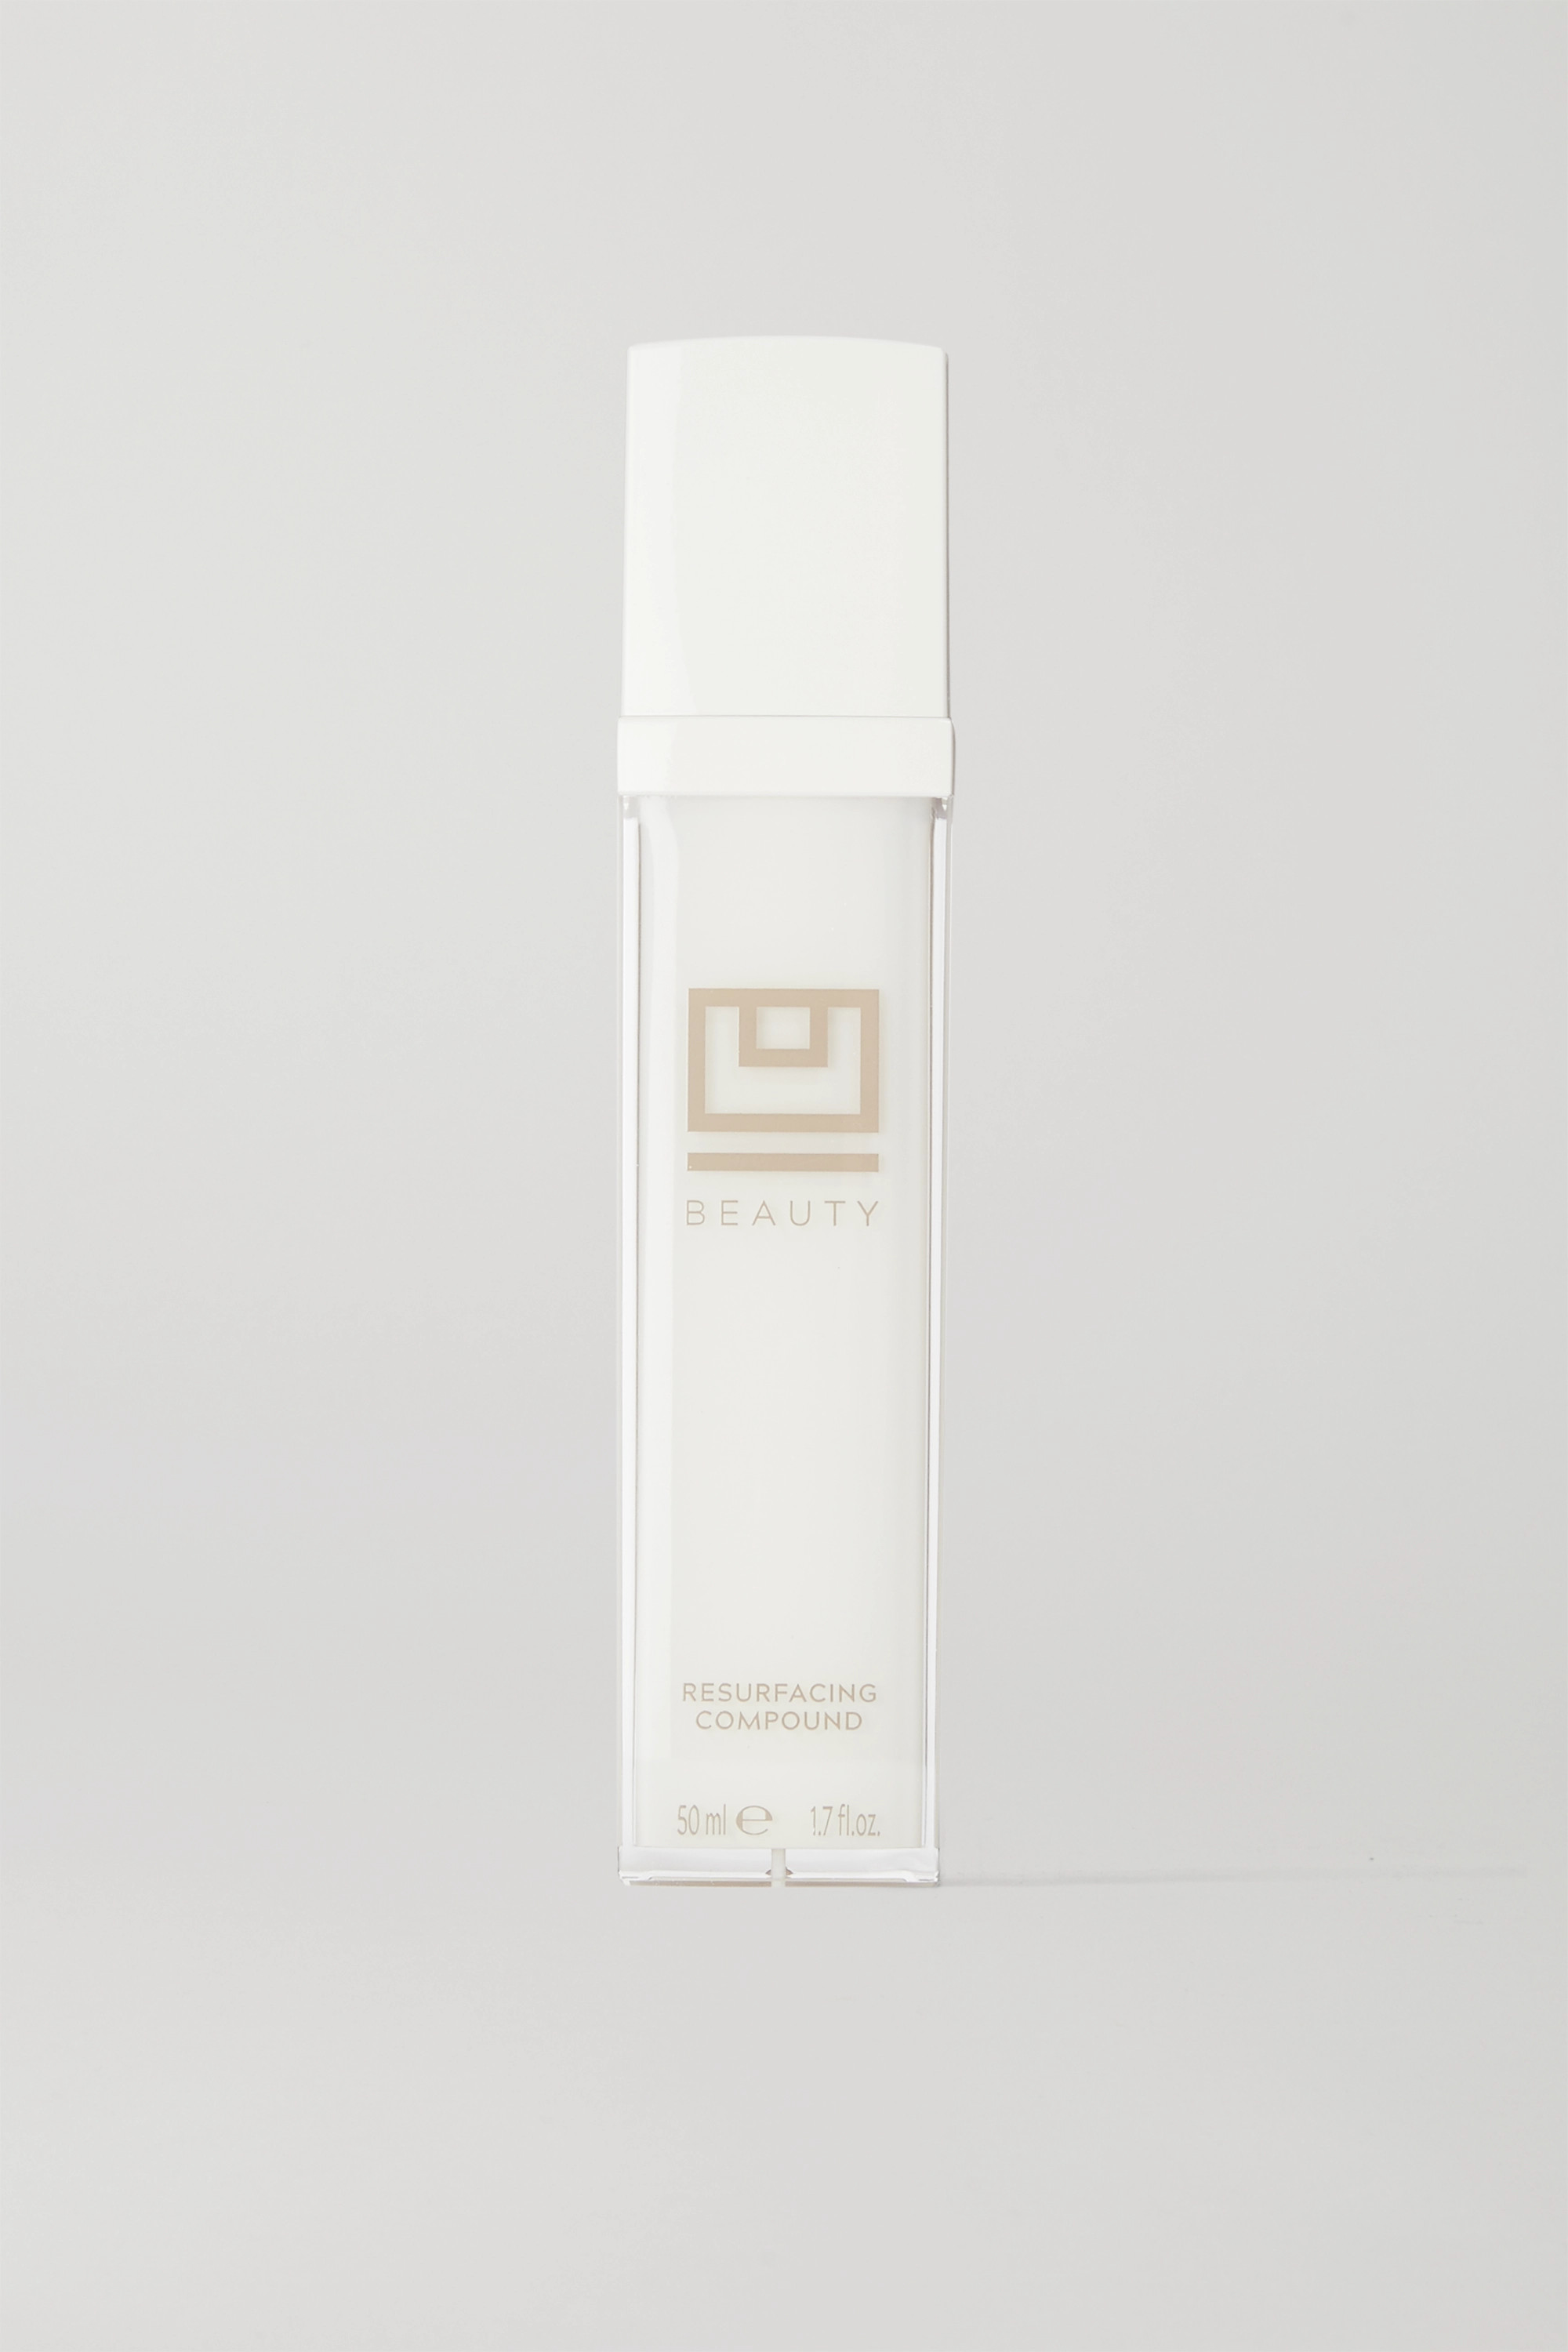 U BEAUTY Resurfacing Compound, 50ml